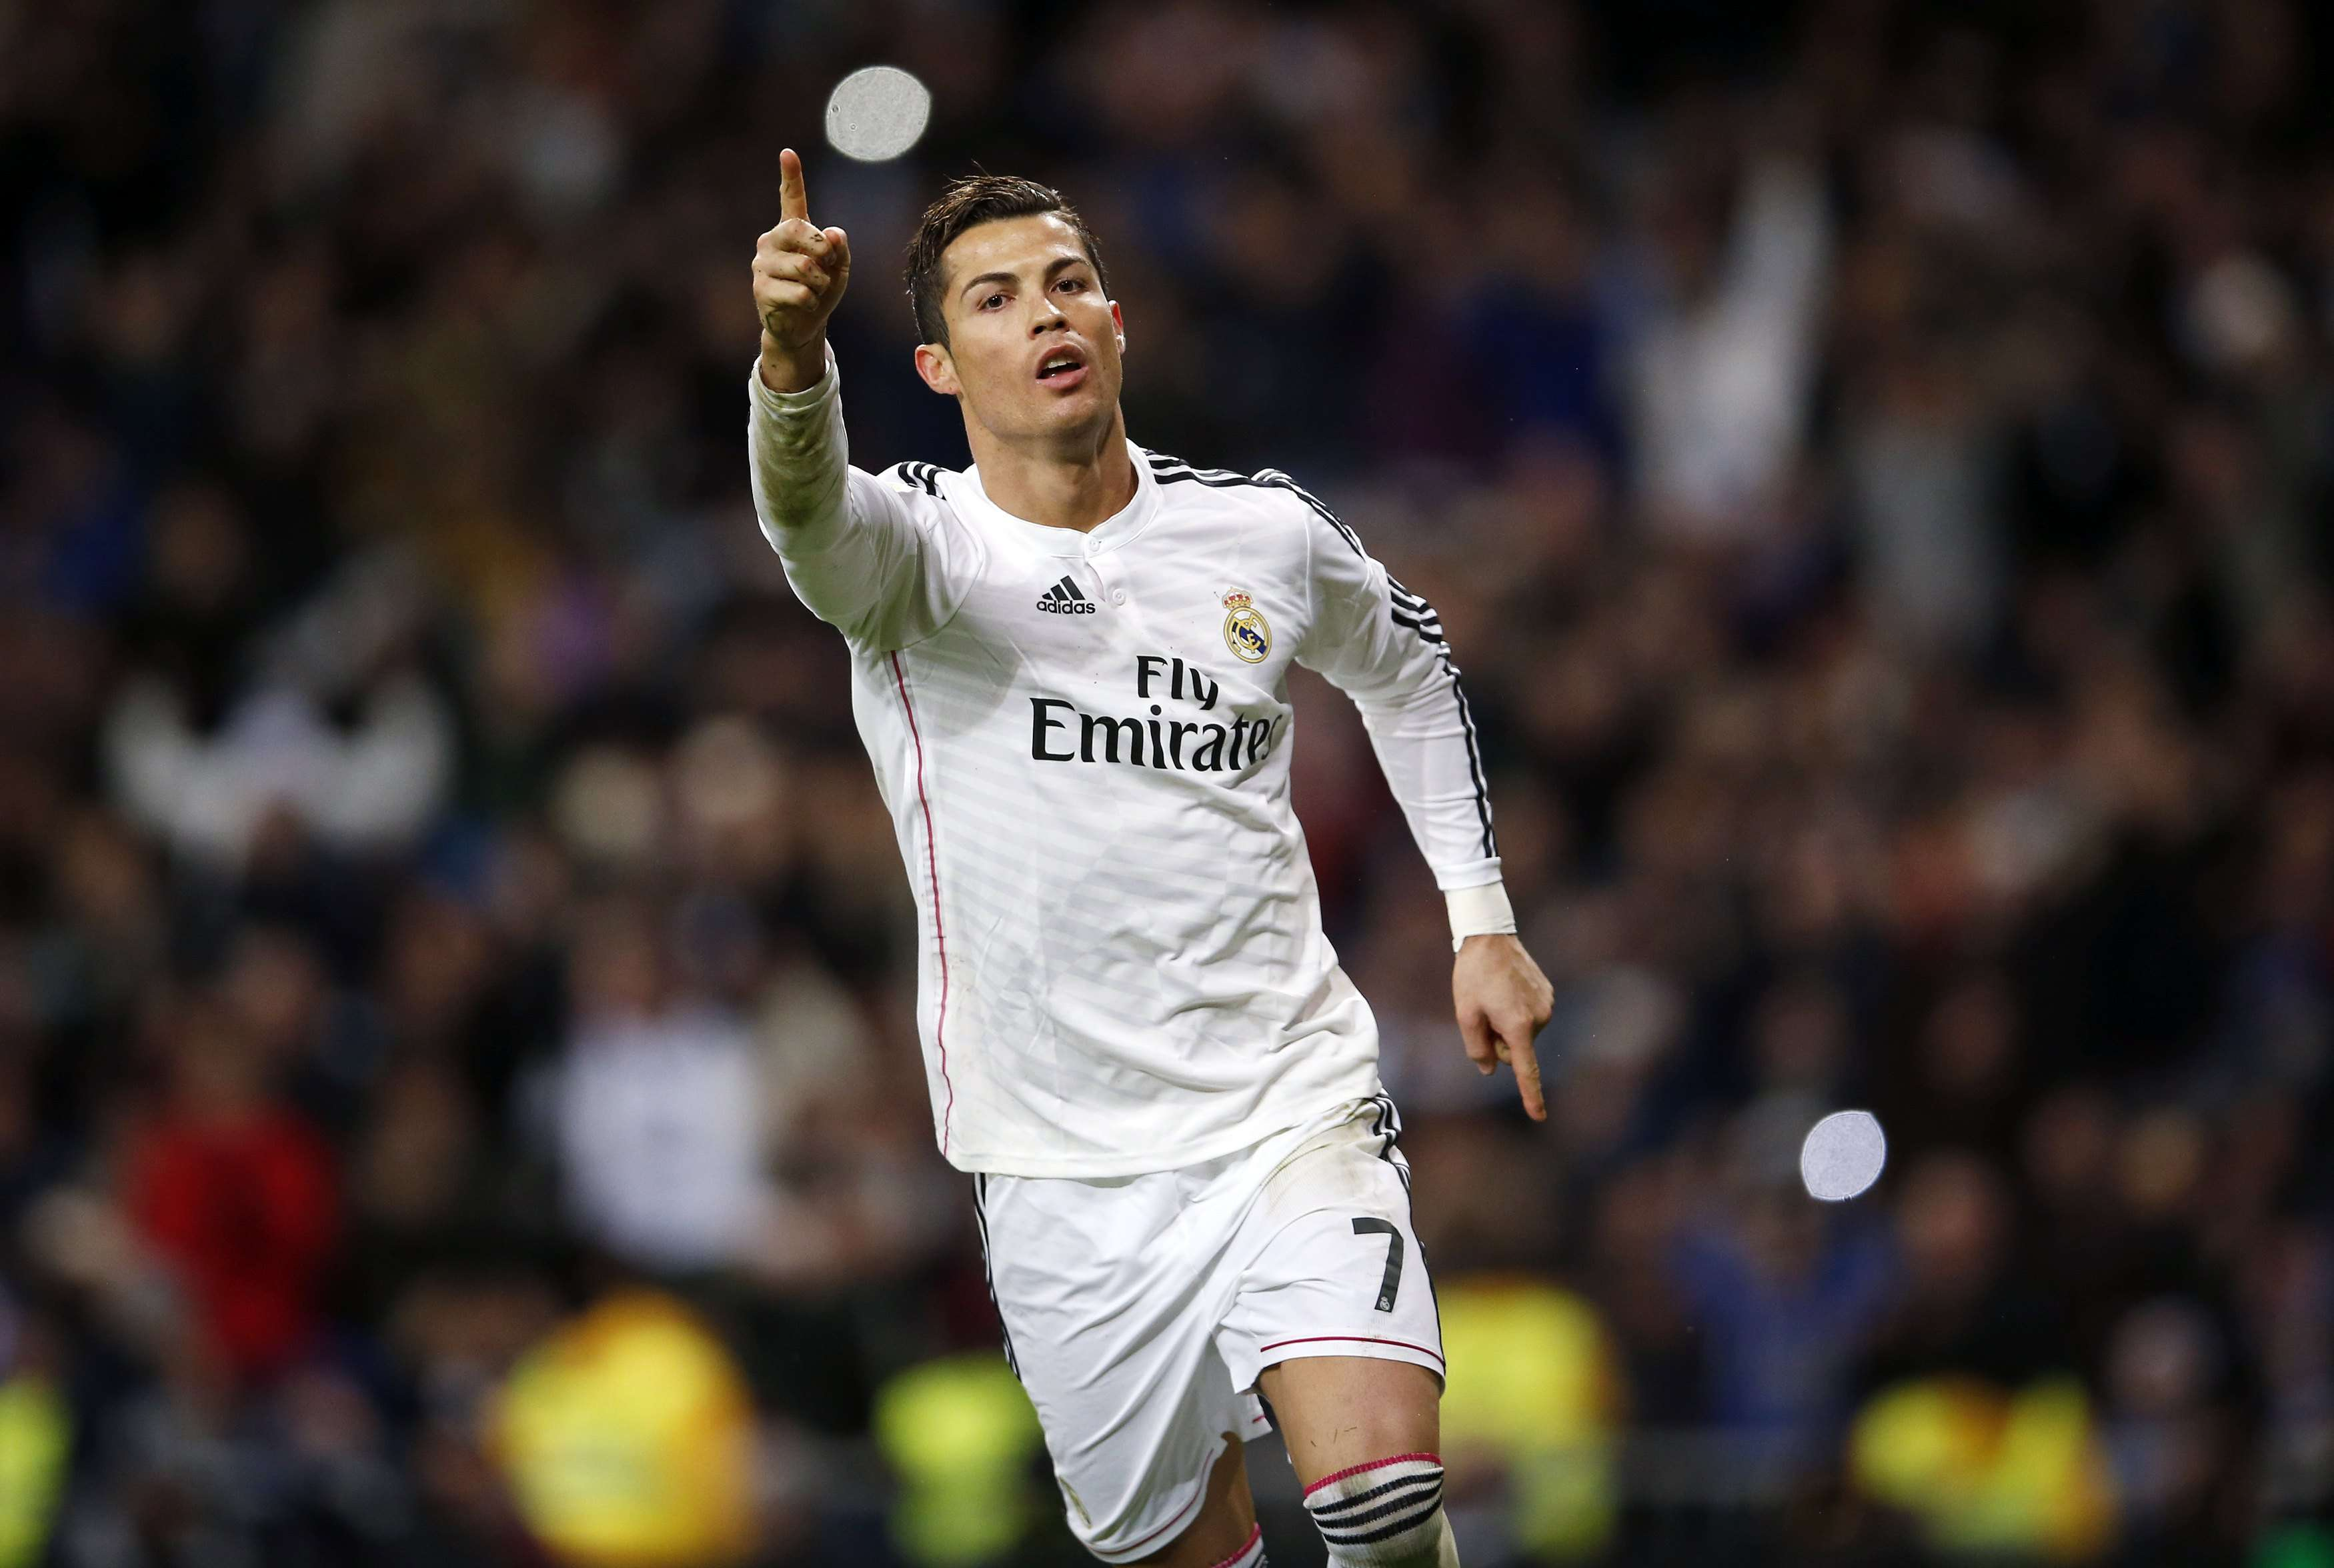 Real Madrid's Cristiano Ronaldo celebrates his goal against Celta Vigo during their Spanish First Division soccer match at Santiago Bernabeu stadium in Madrid December 6, 2014. REUTERS/Andrea Comas (SPAIN - Tags: SPORT SOCCER) Foto: ANDREA COMAS/REUTERS